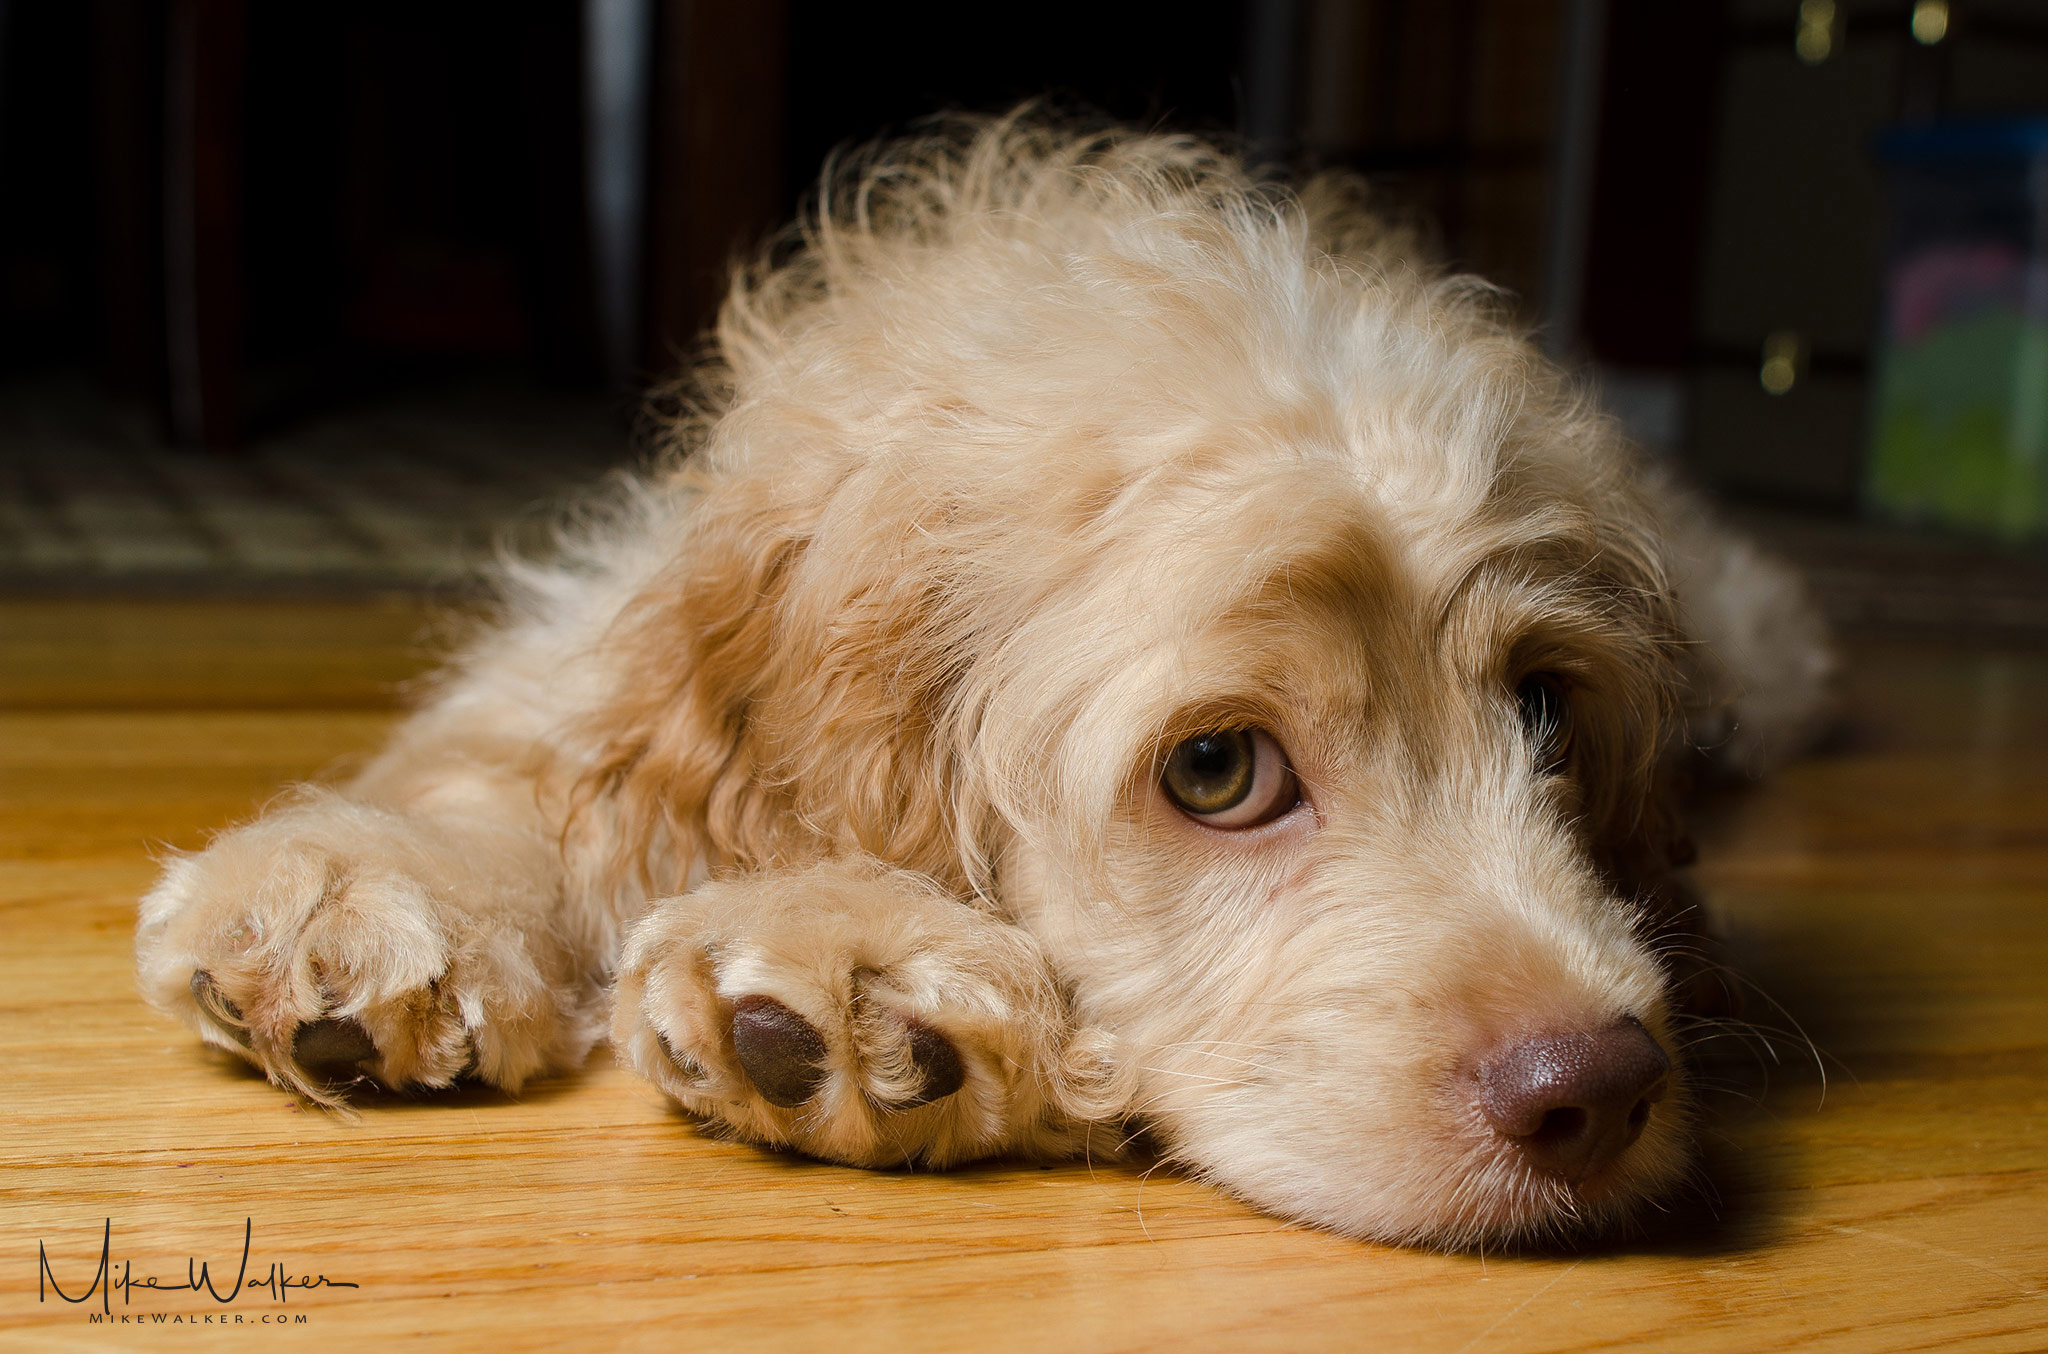 Cockapoo resting on the floor. Animal photography by Mike Walker.